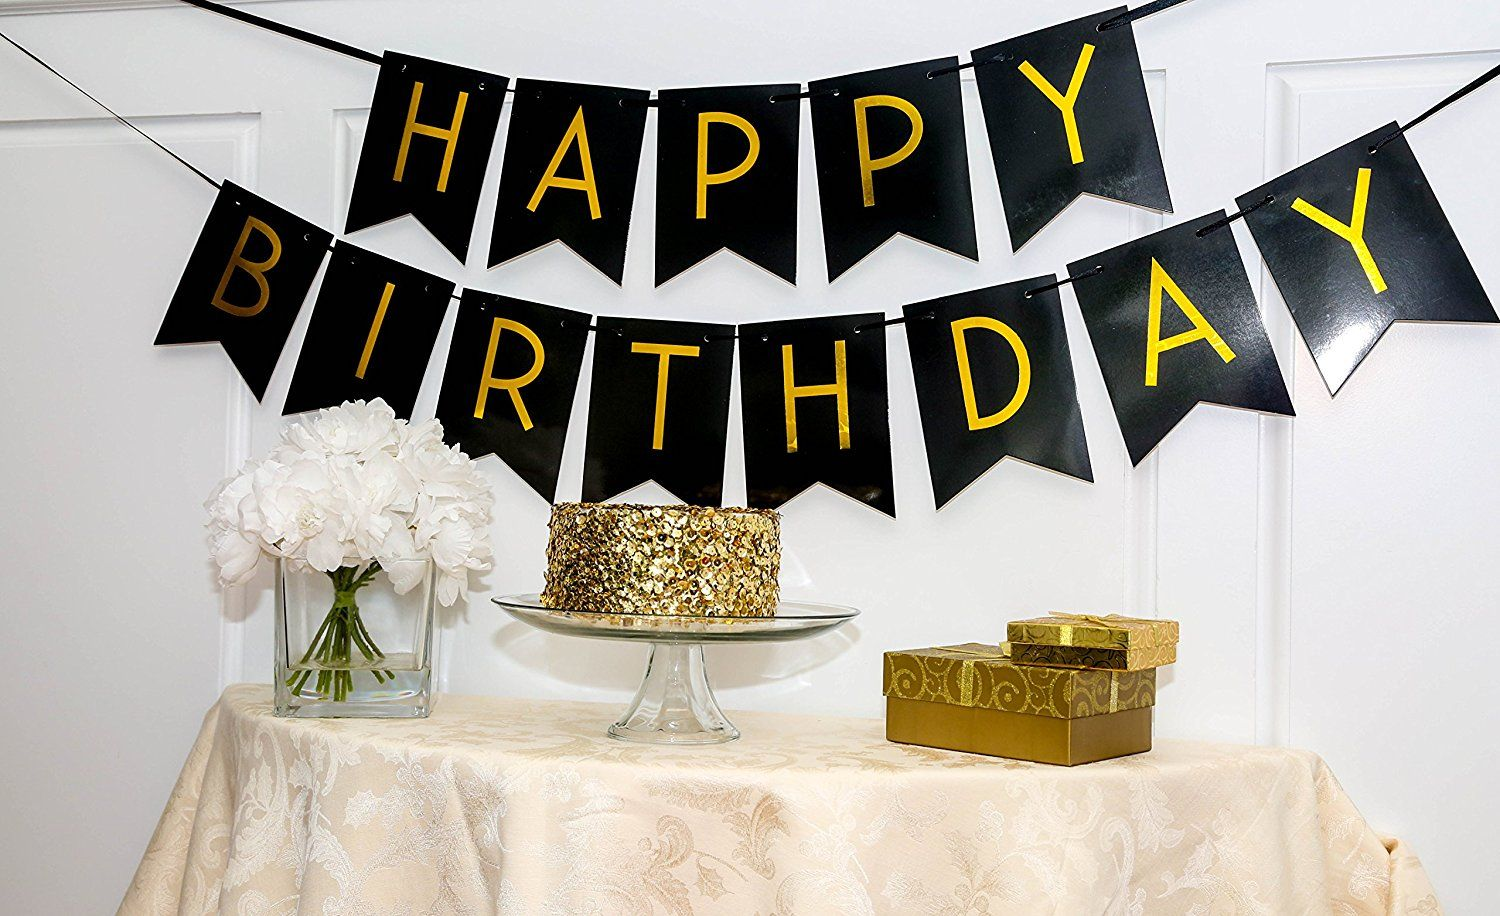 Black Happy Birthday Bunting Banner With Shimmering Gold Letters